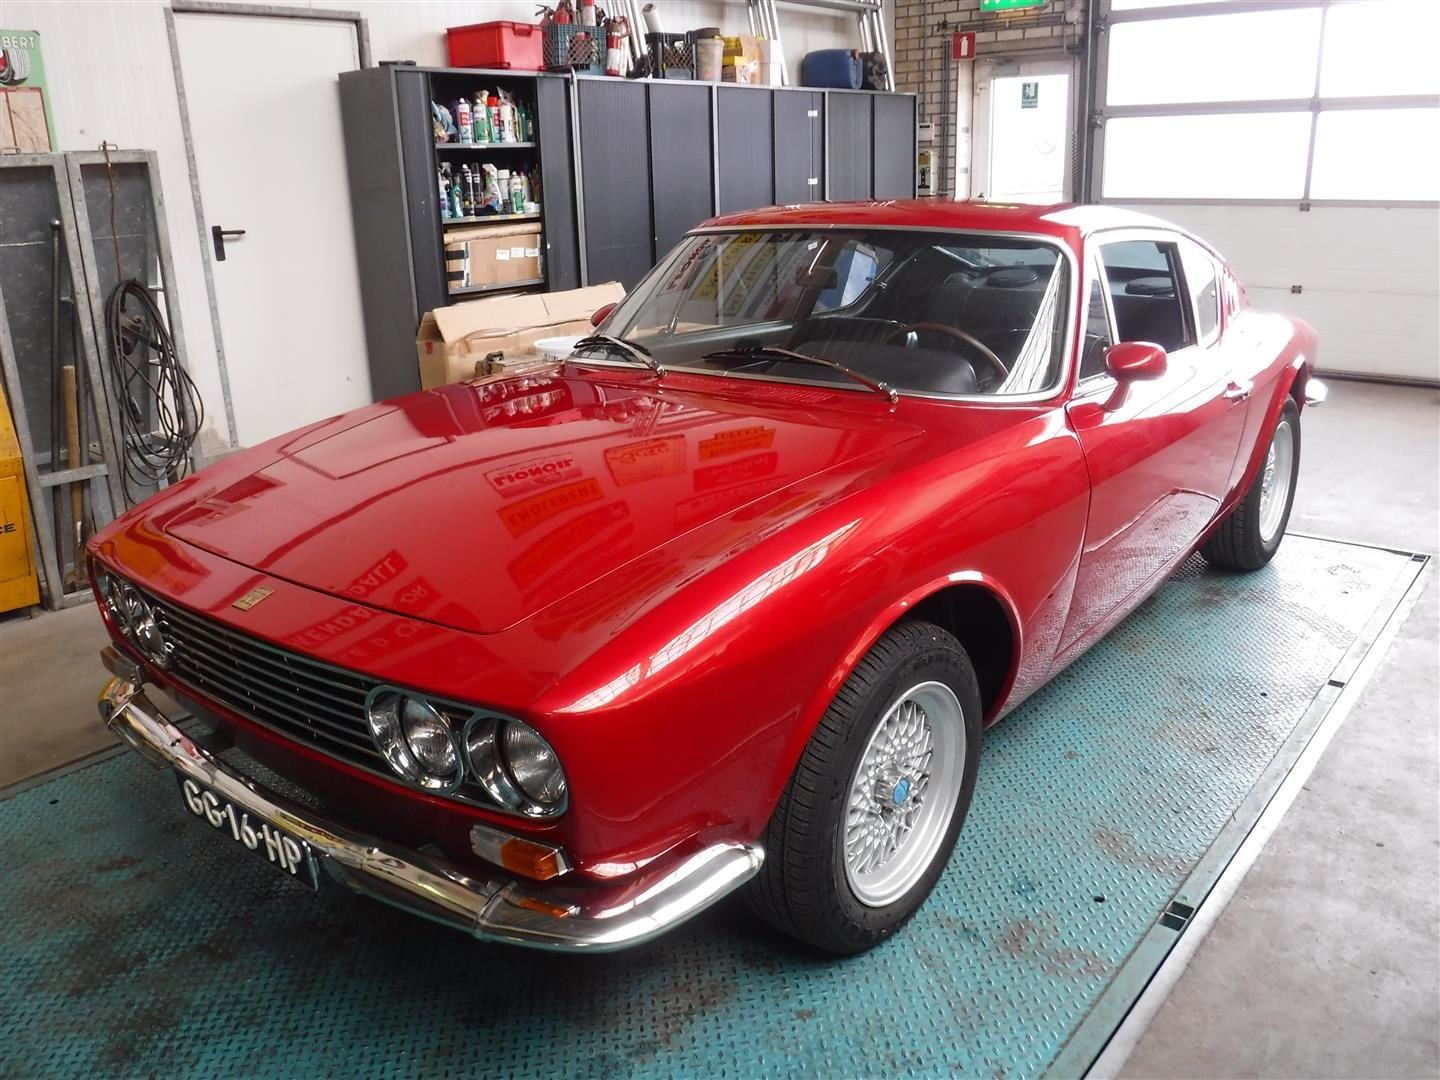 OSI  20 M TS coupe  1968 For Sale (picture 2 of 6)